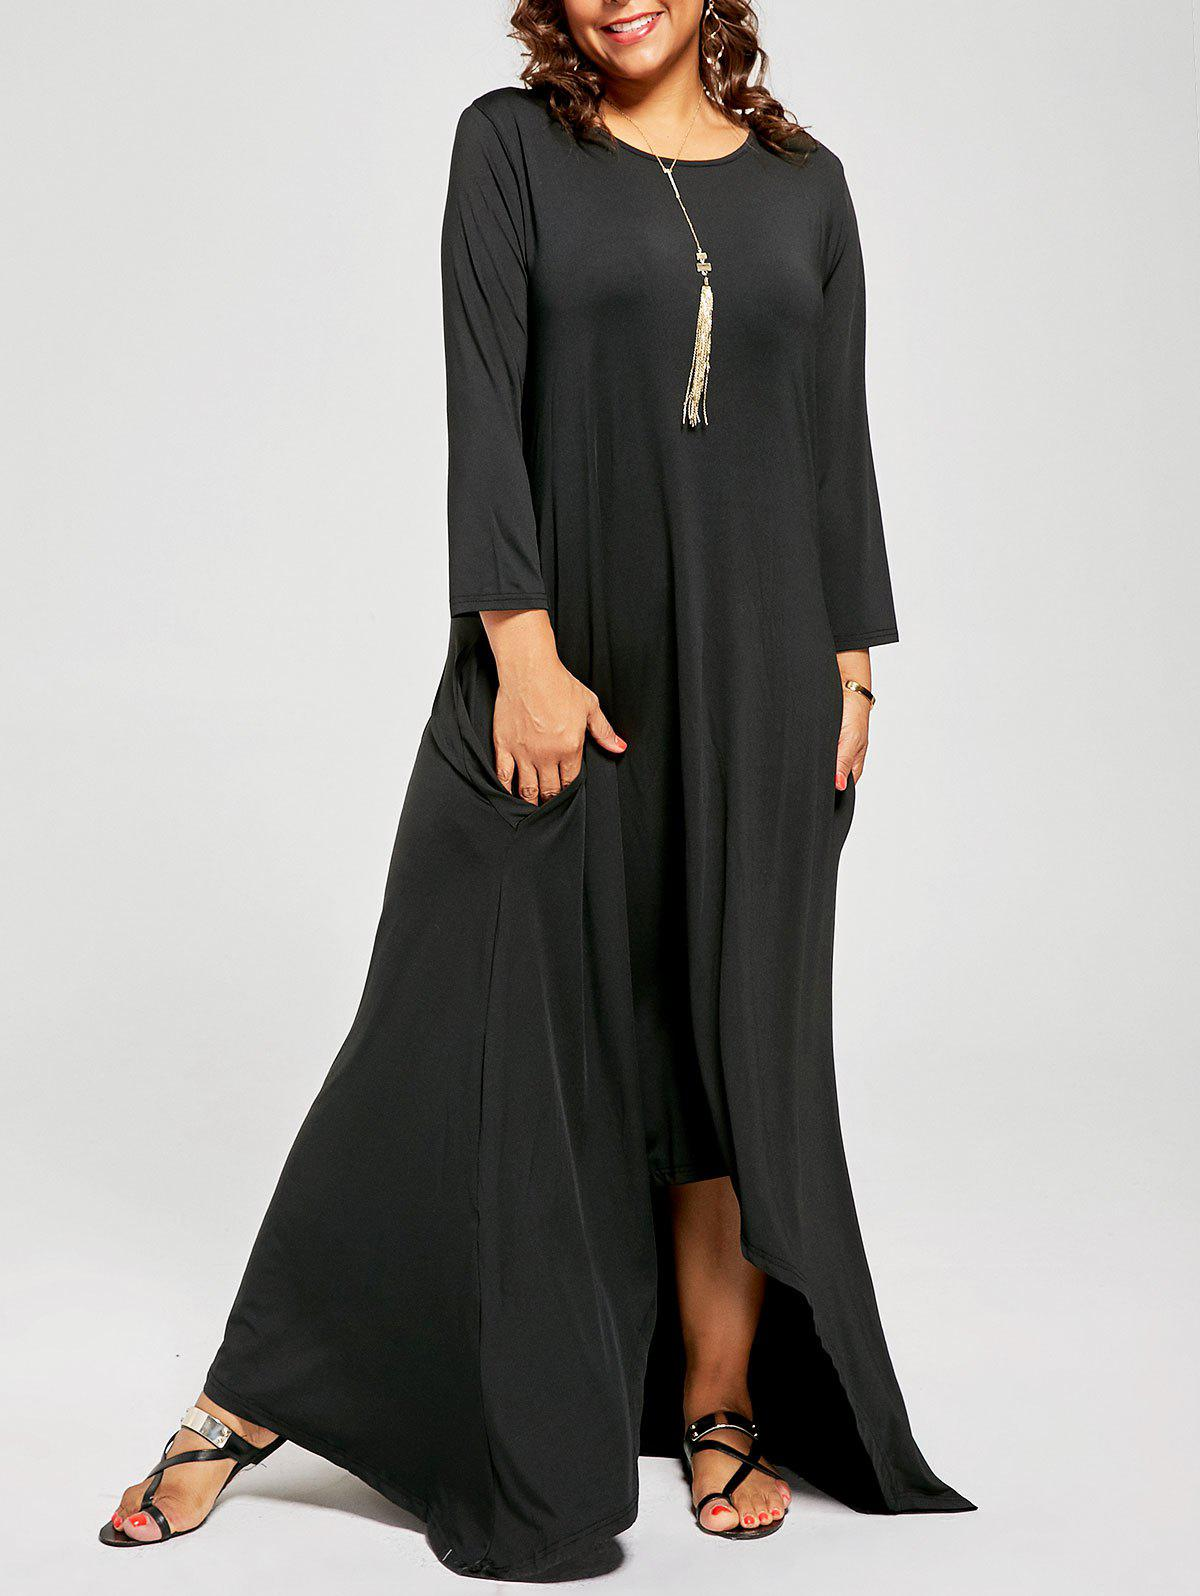 2018 Plus Size High Low Maxi T-shirt Dress with Long ...